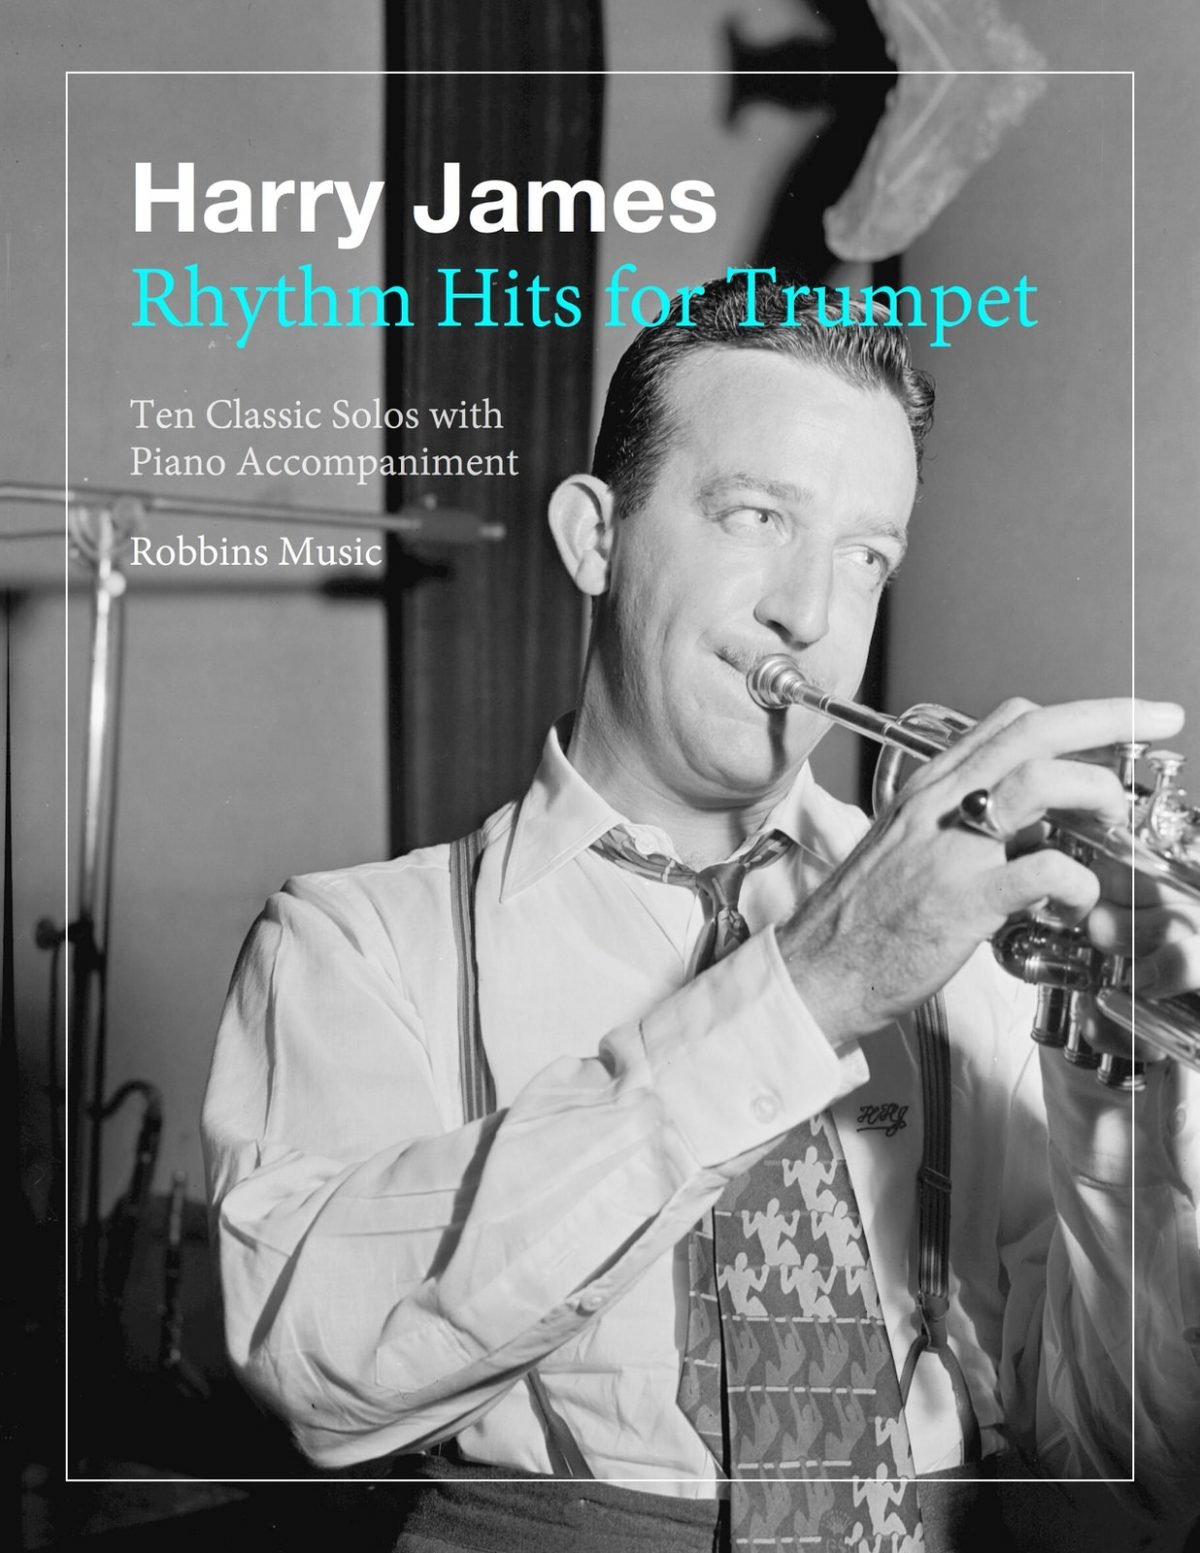 James, Rhythm Hits for Trumpet-p01